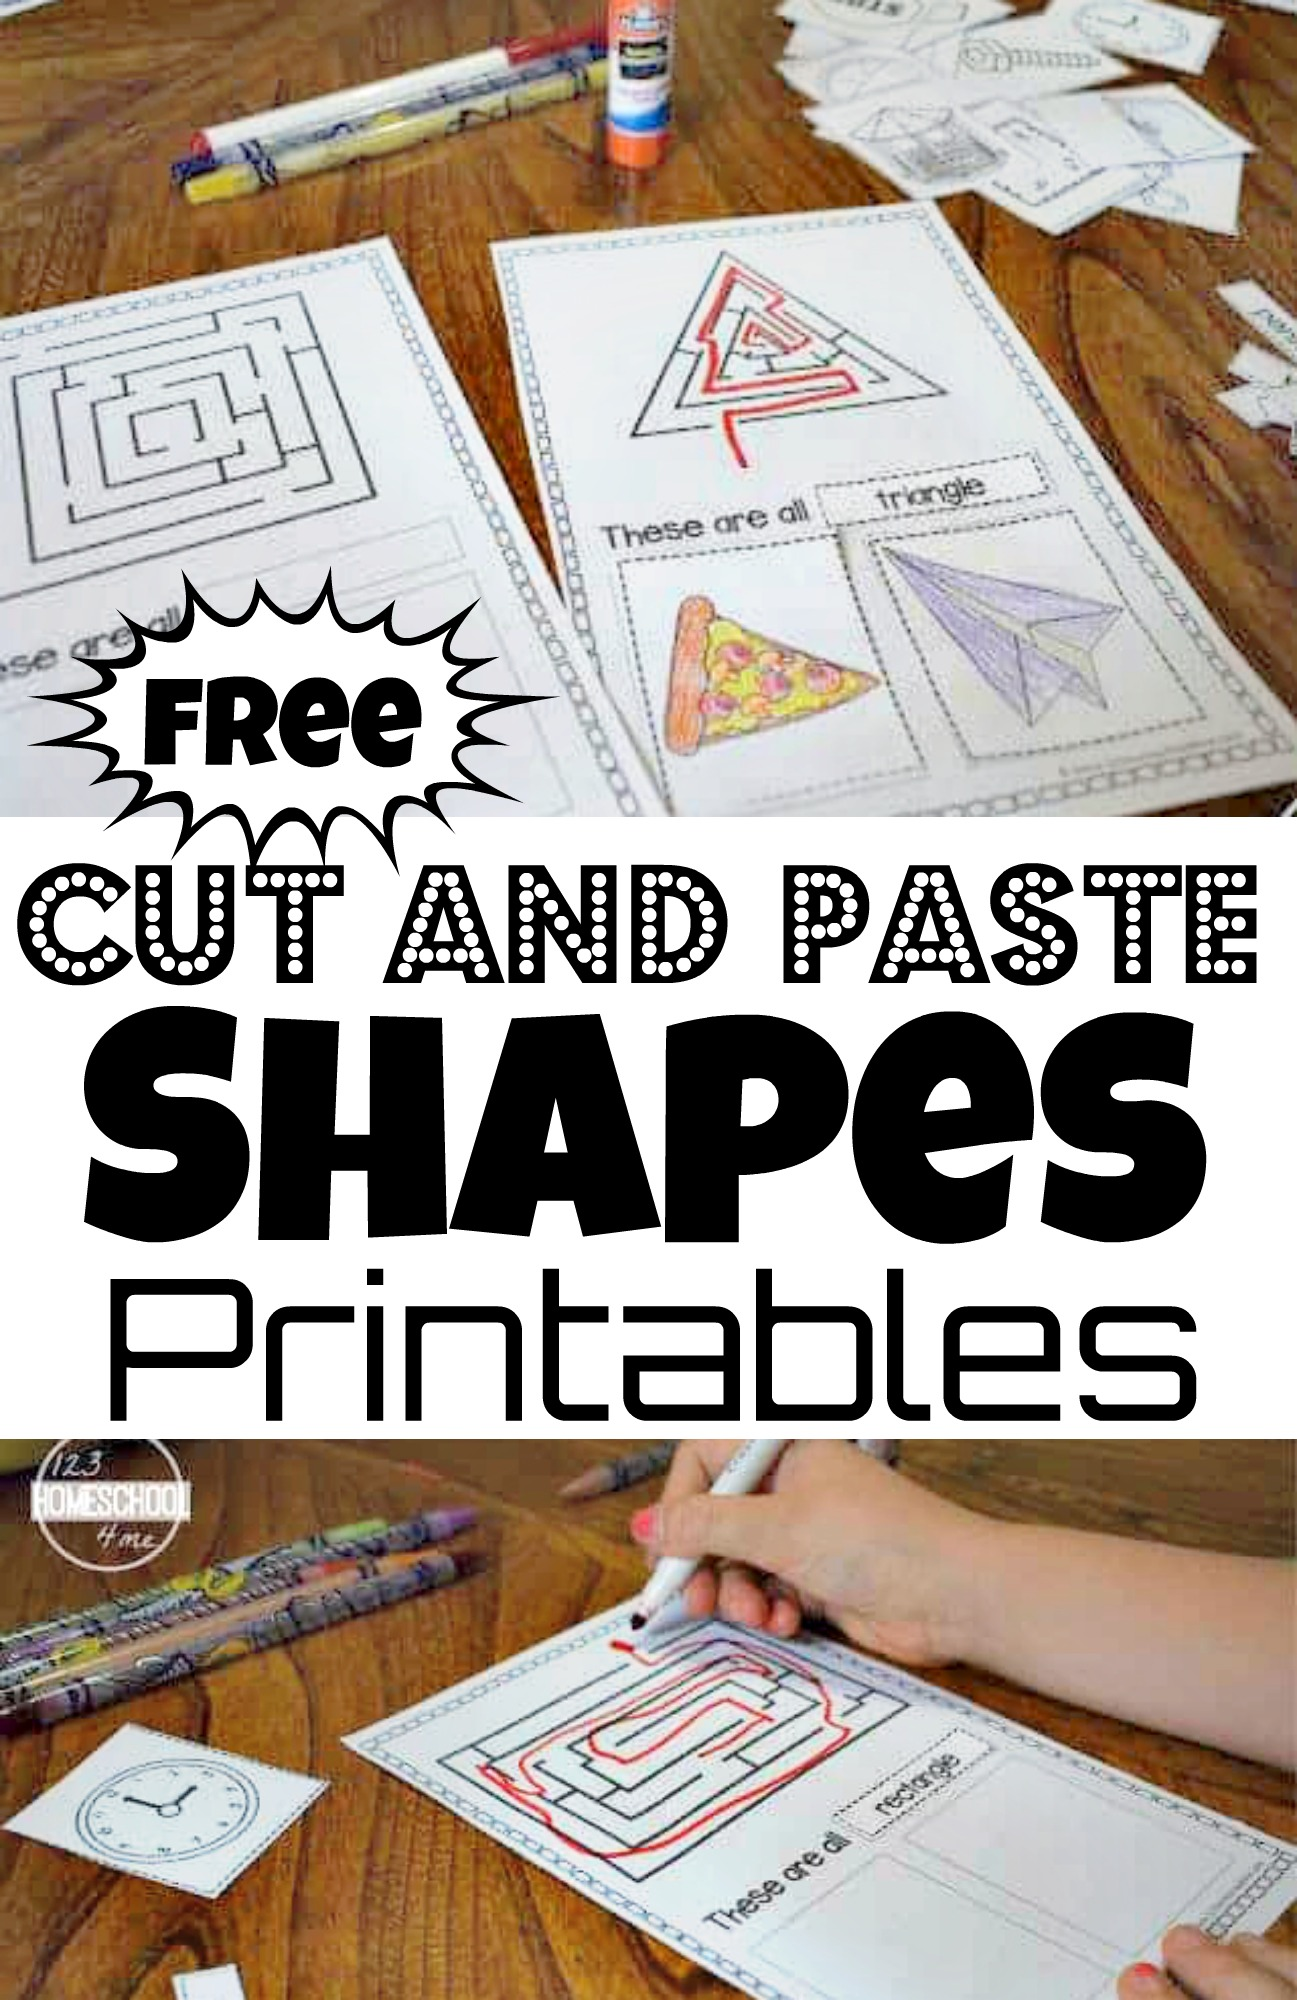 Free Cut And Paste Shapes Printable